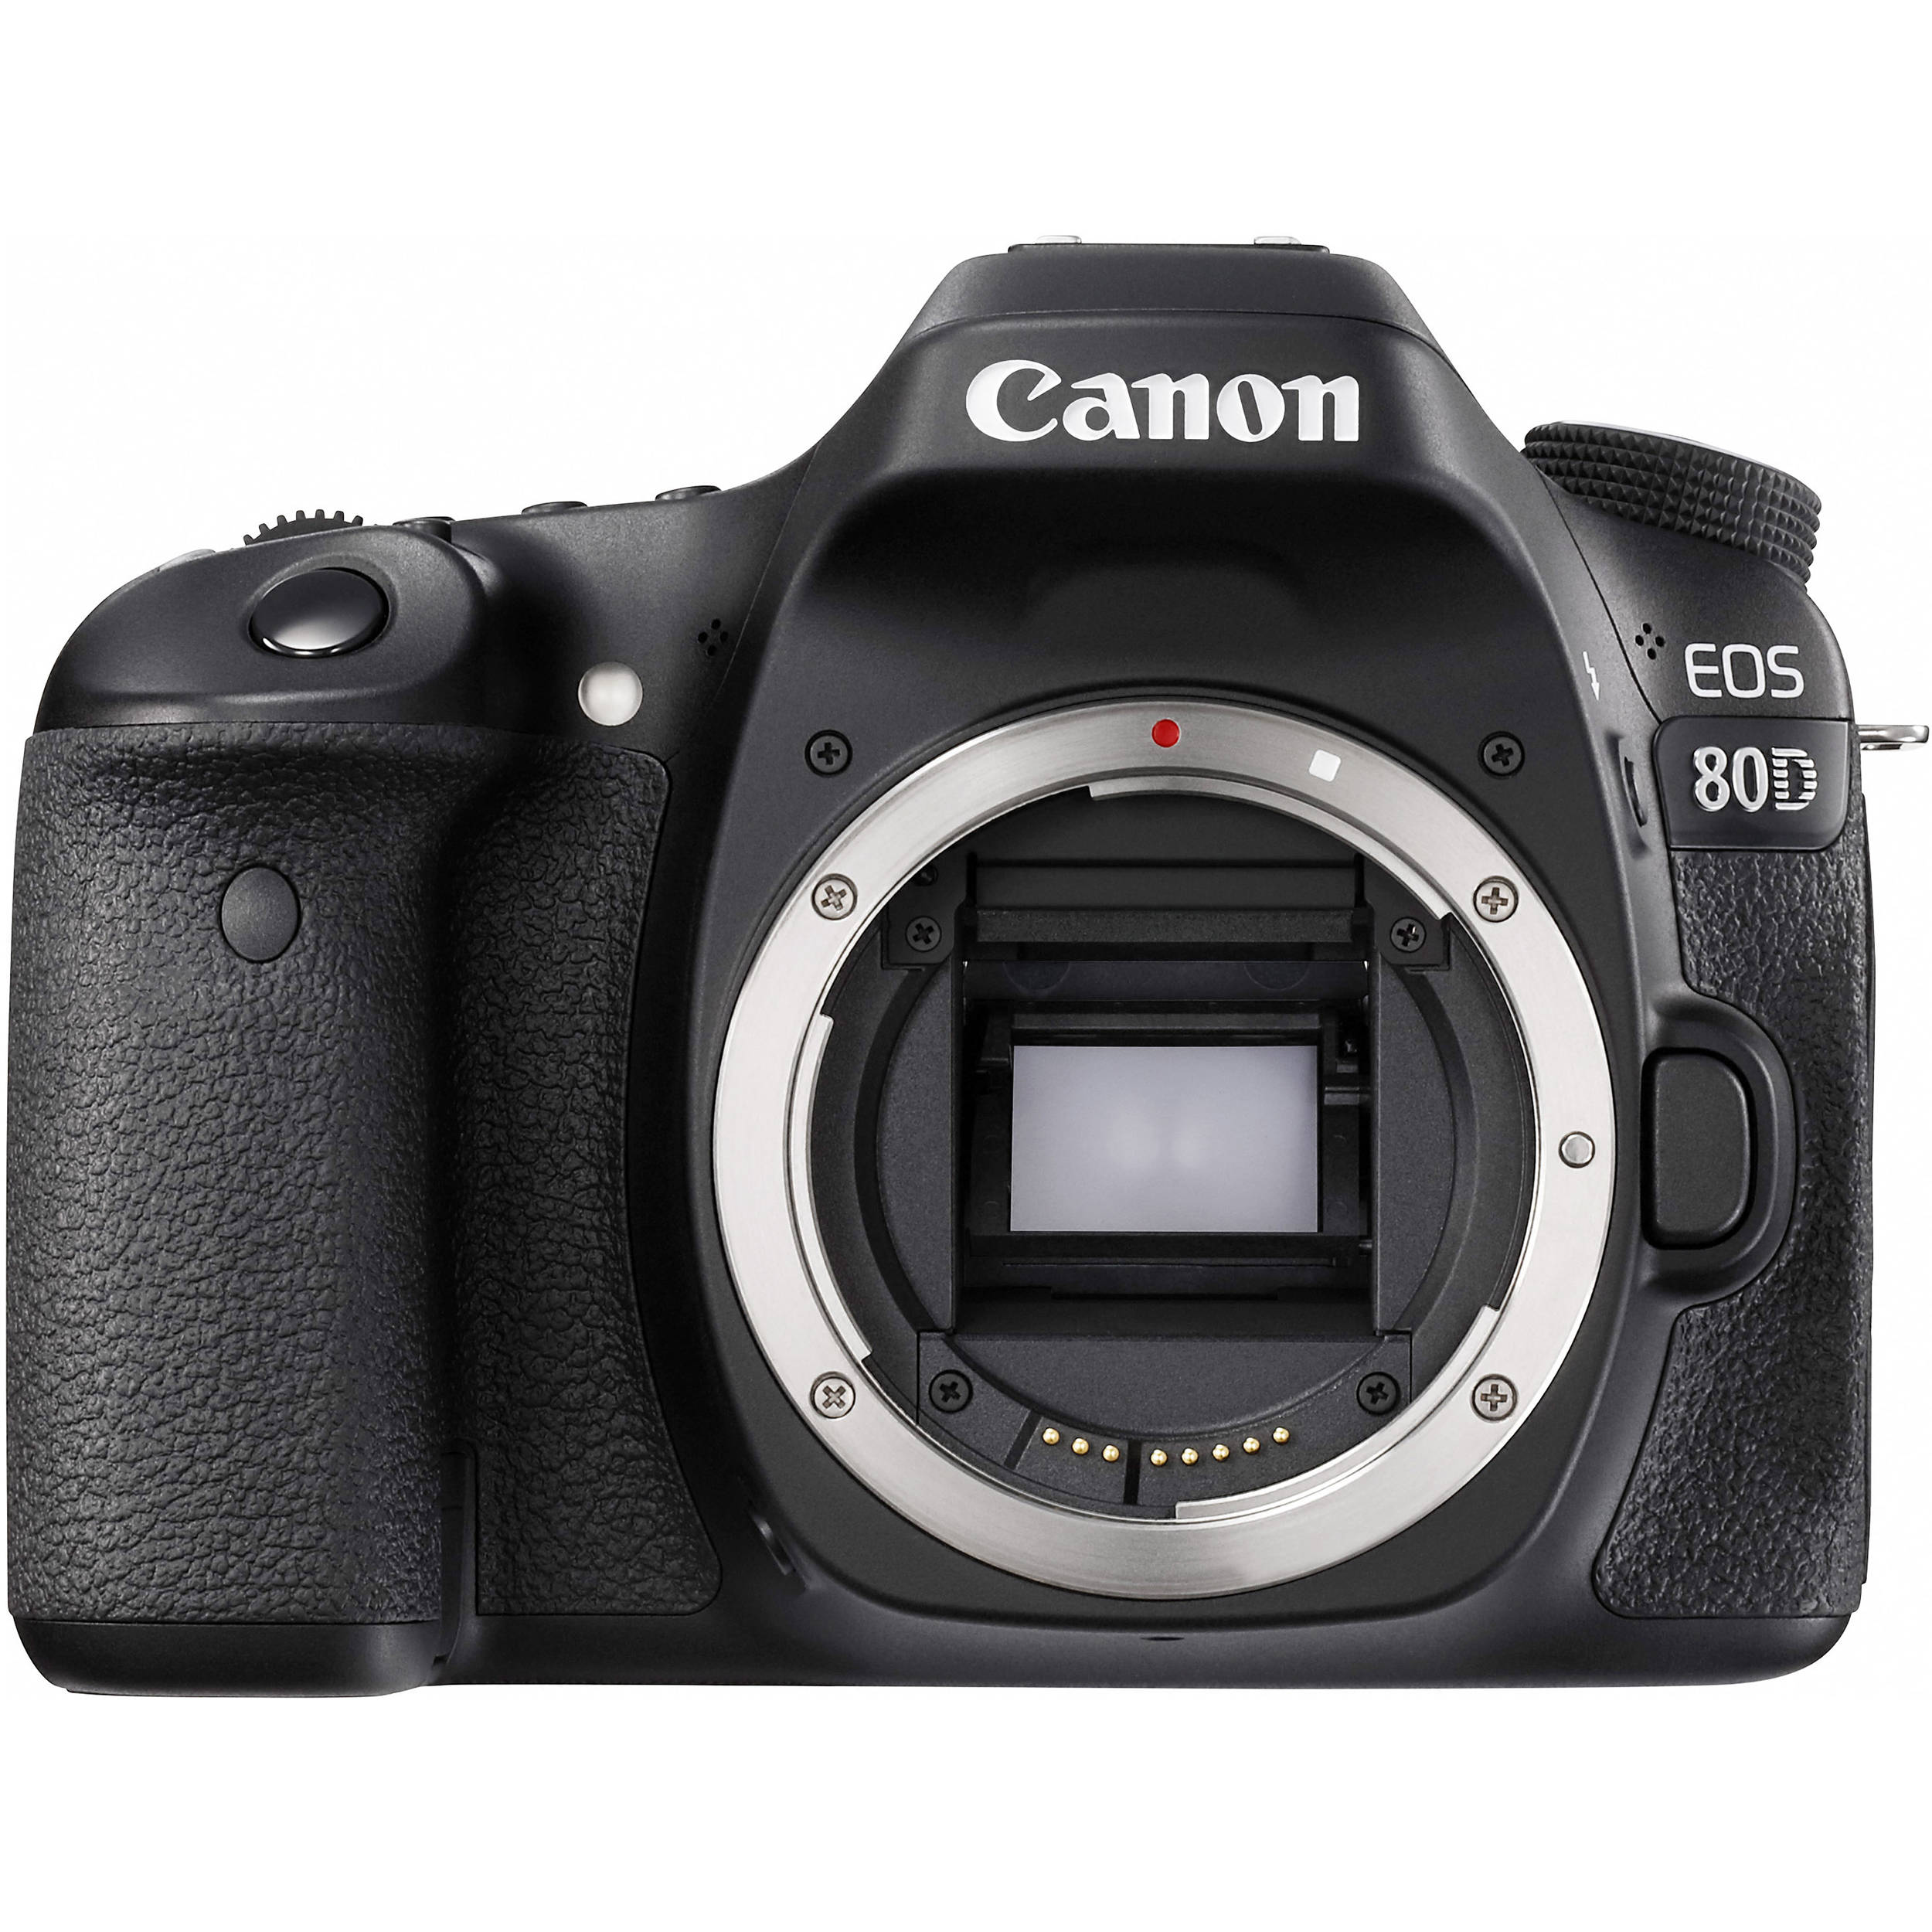 Still photography and video photography Canon 80D